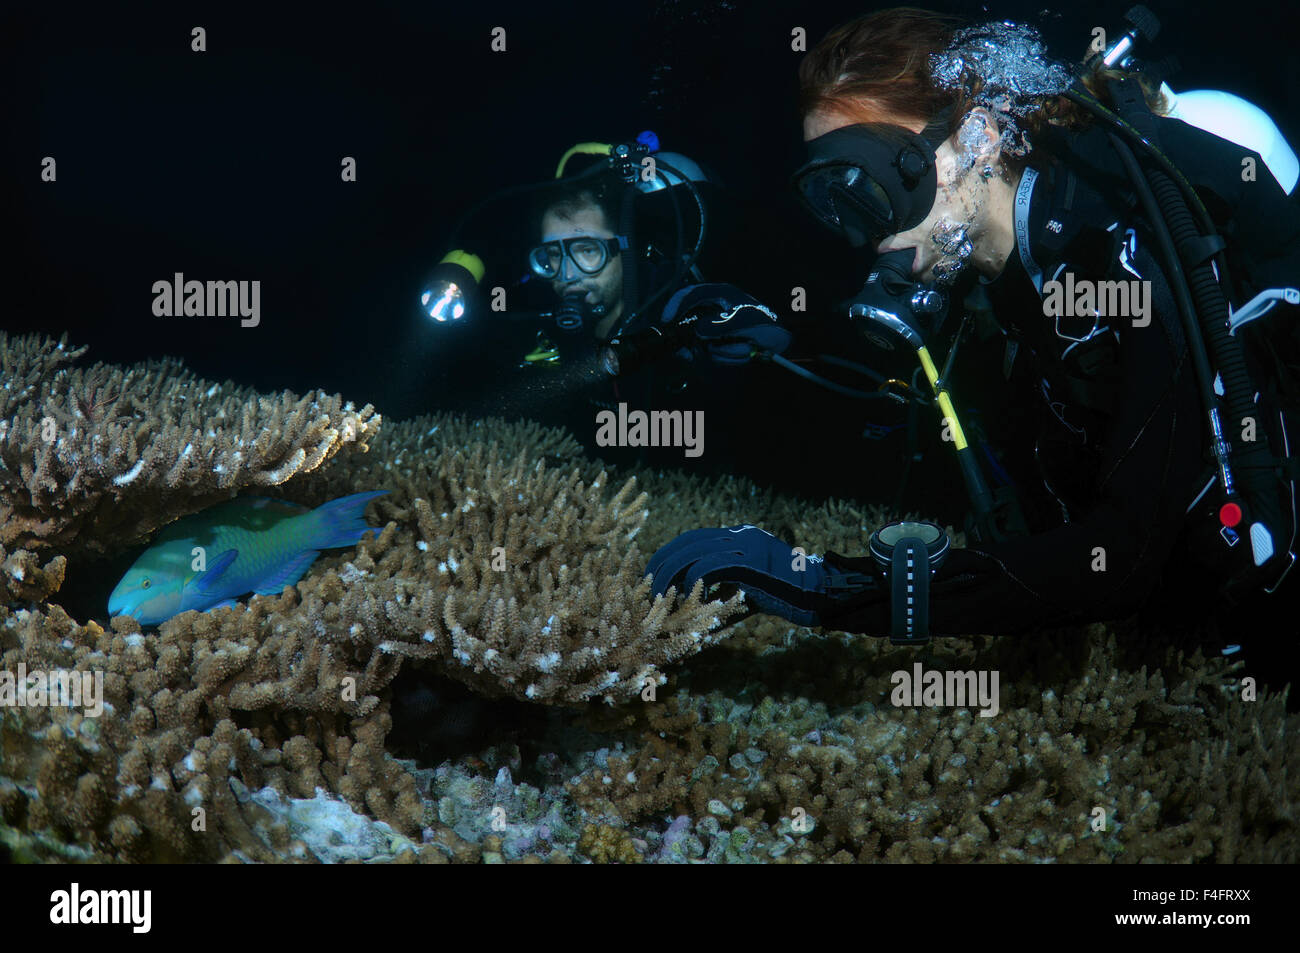 Young couple divers look at the sleeping bicolour parrotfish (Cetoscarus bicolor) night diving, Indian Ocean, Maldives Stock Photo